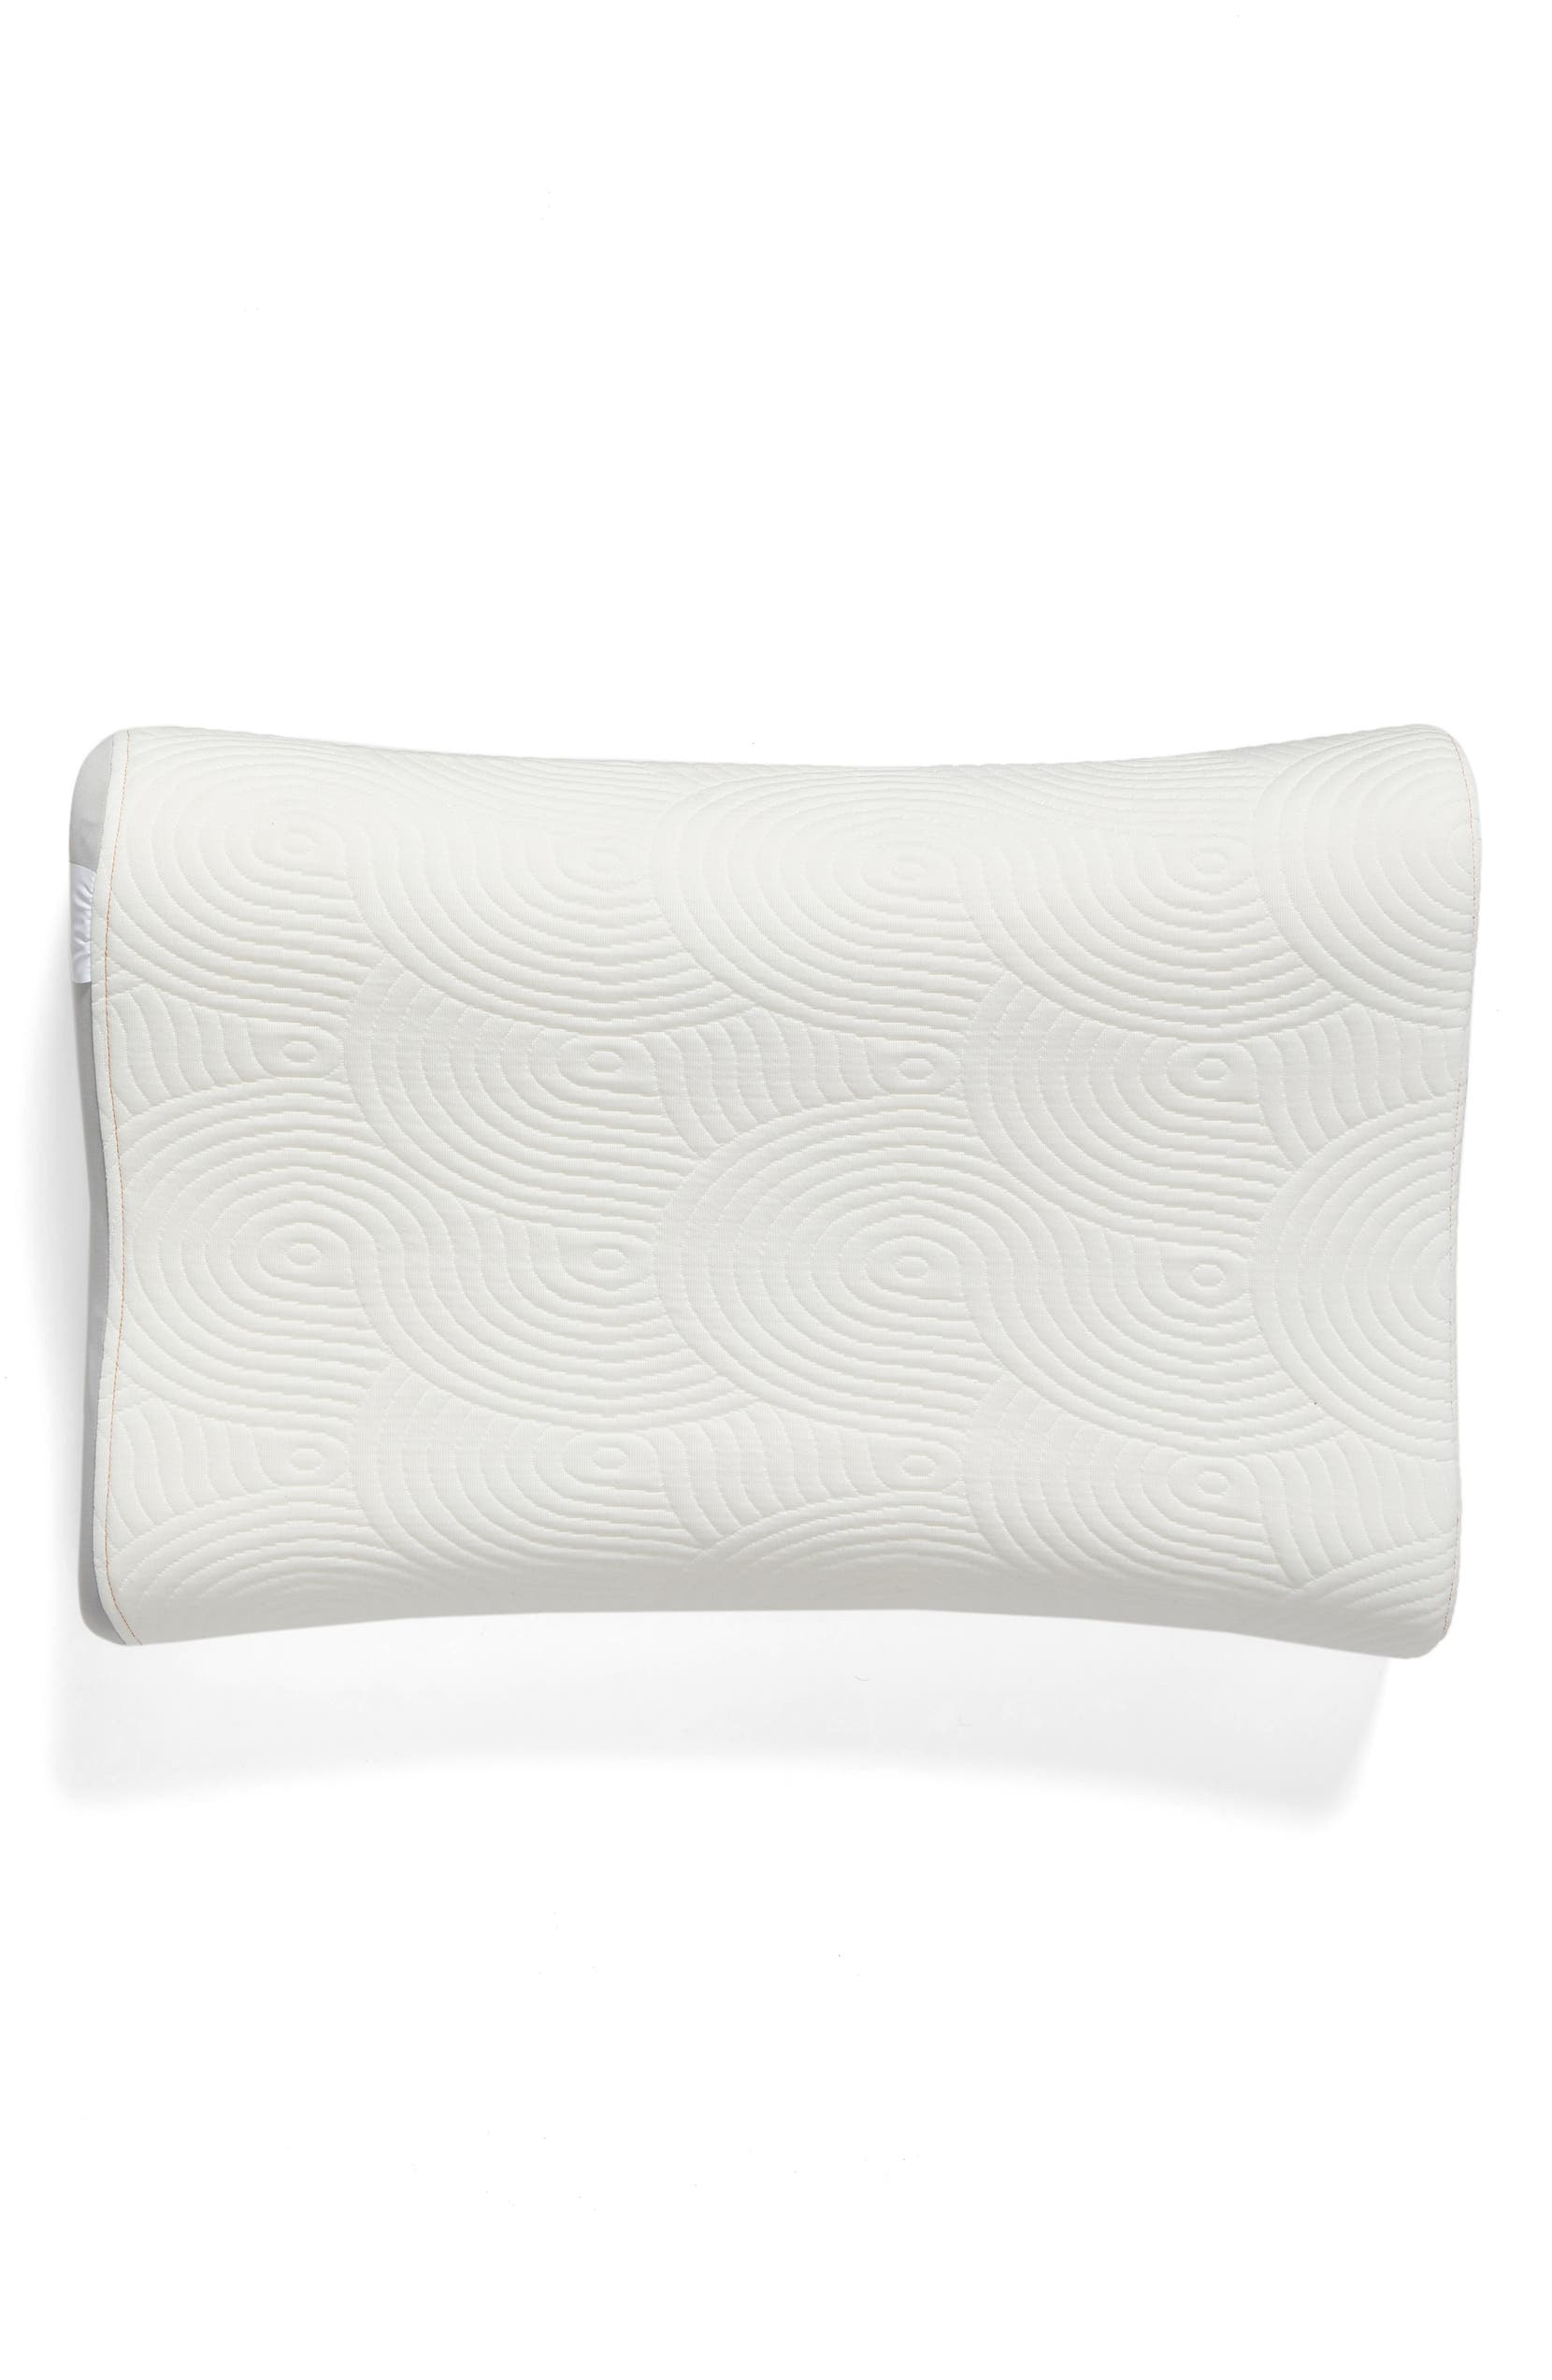 super popular ec9d4 2326c Tempur-Pedic TEMPUR-Contour Side-to-Side Pillow